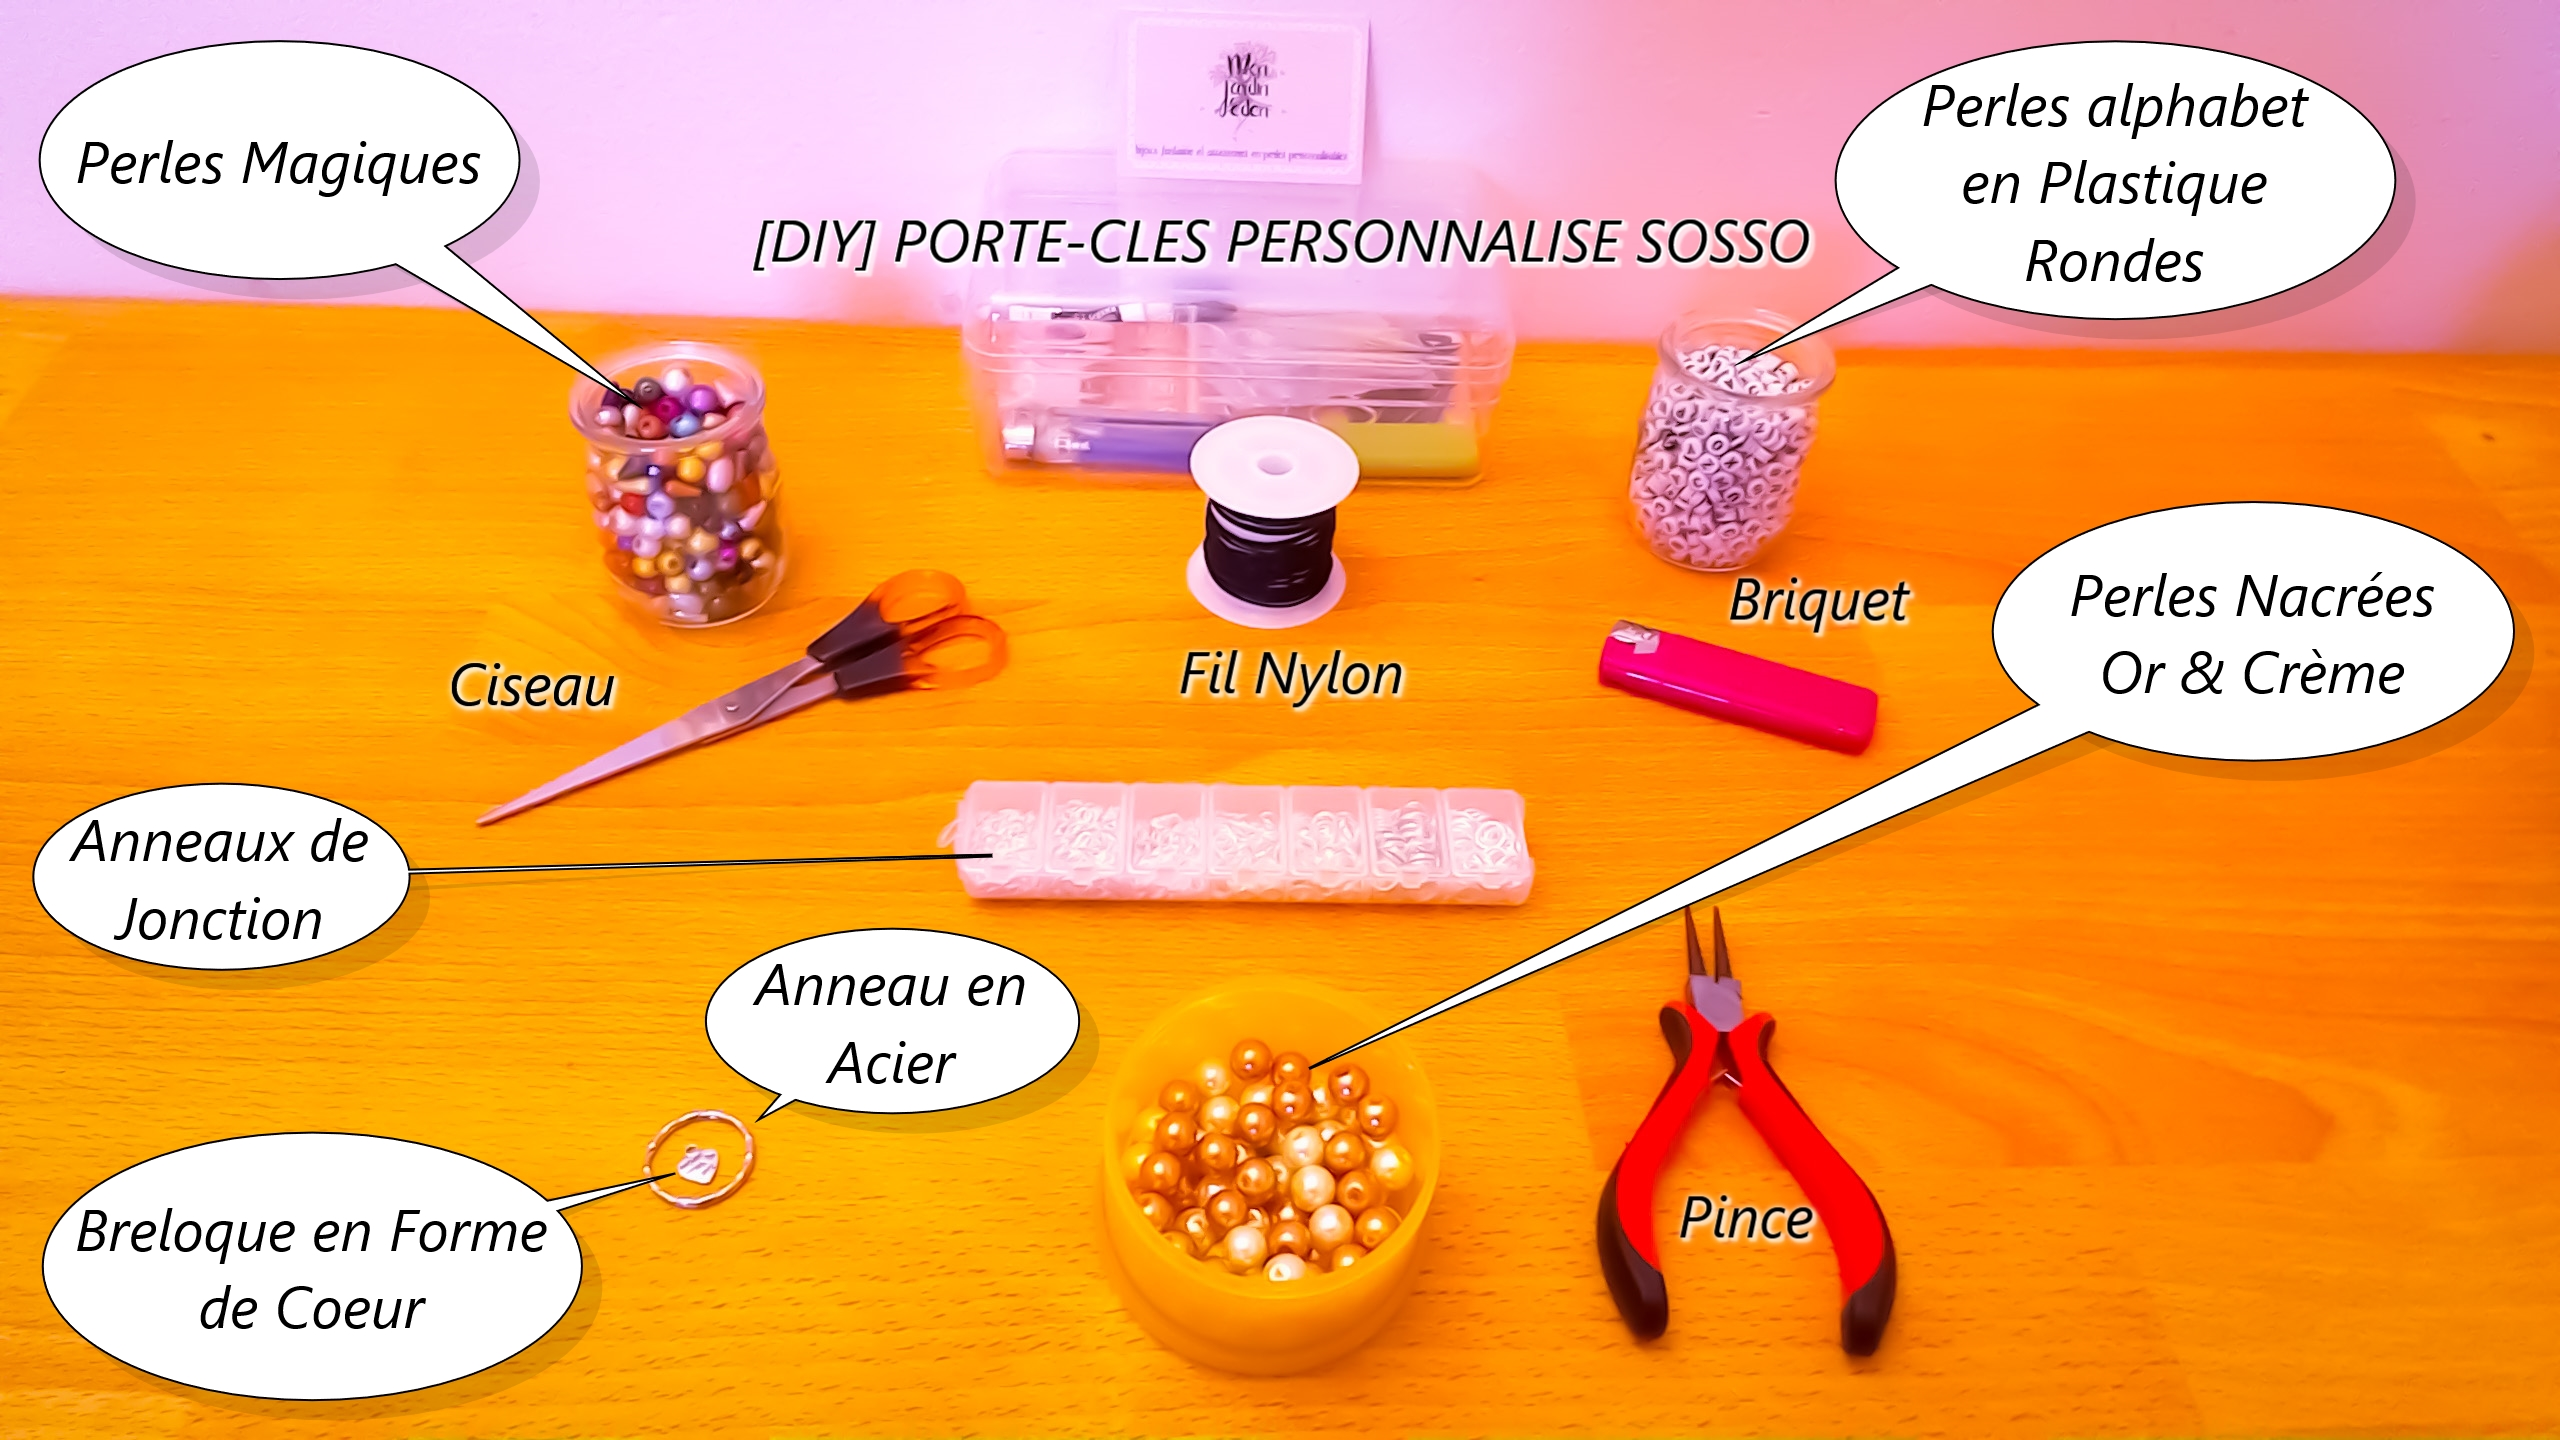 [DIY] PORTE-CLES PERSONNALISE SOSSO